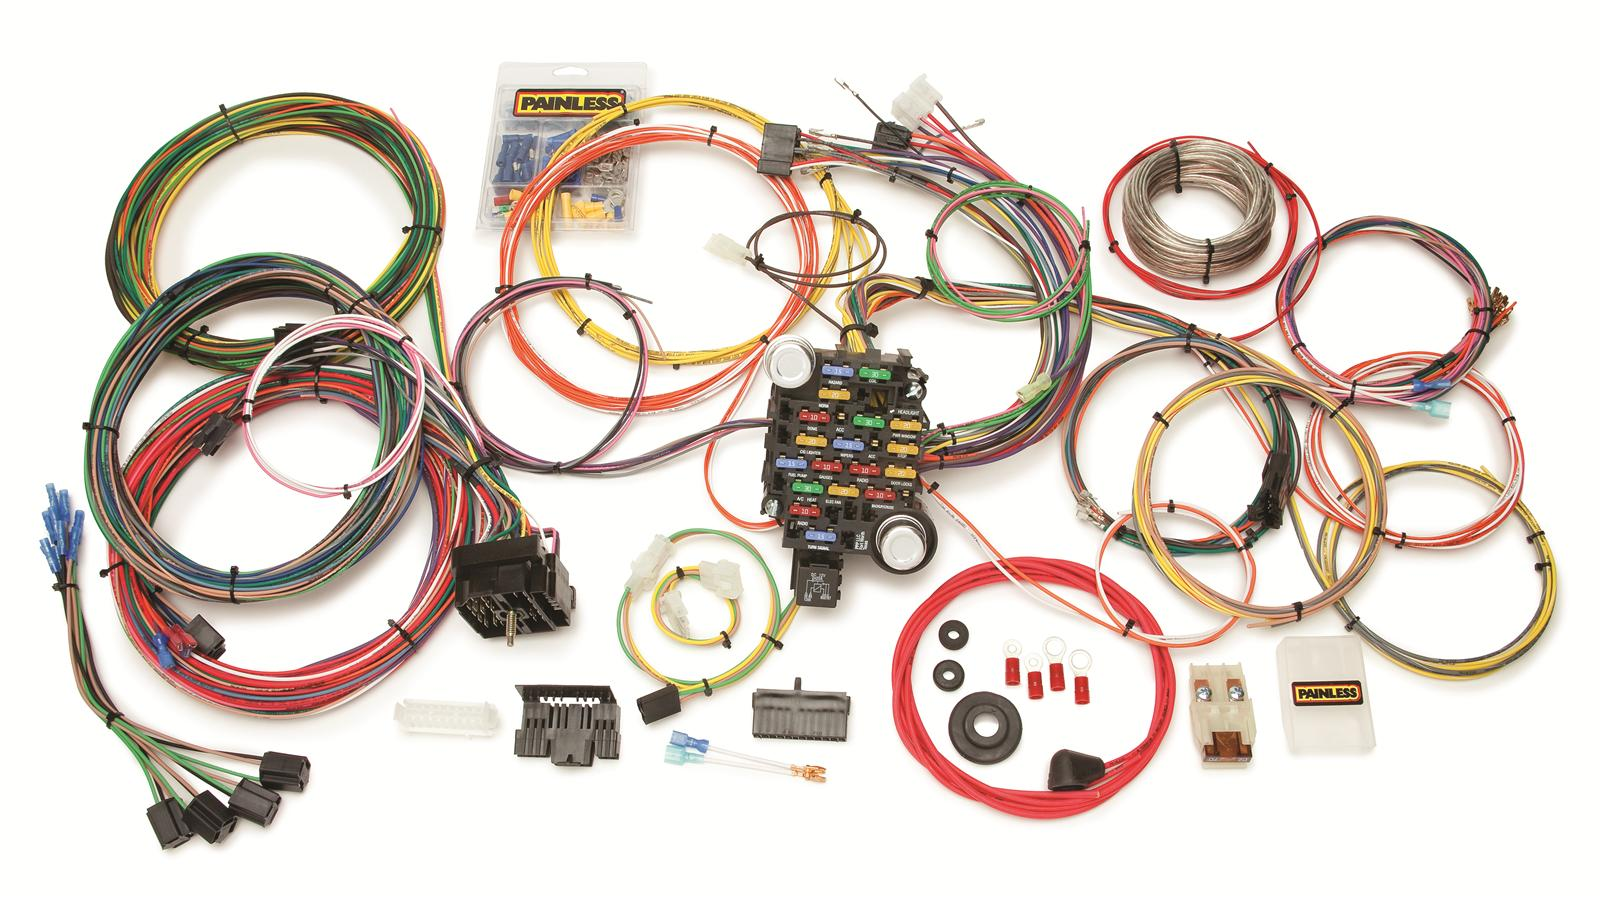 Painless Performance GMC/Chevy Truck Harnesses 10205 - Free Shipping on  Orders Over $49 at Summit Racing